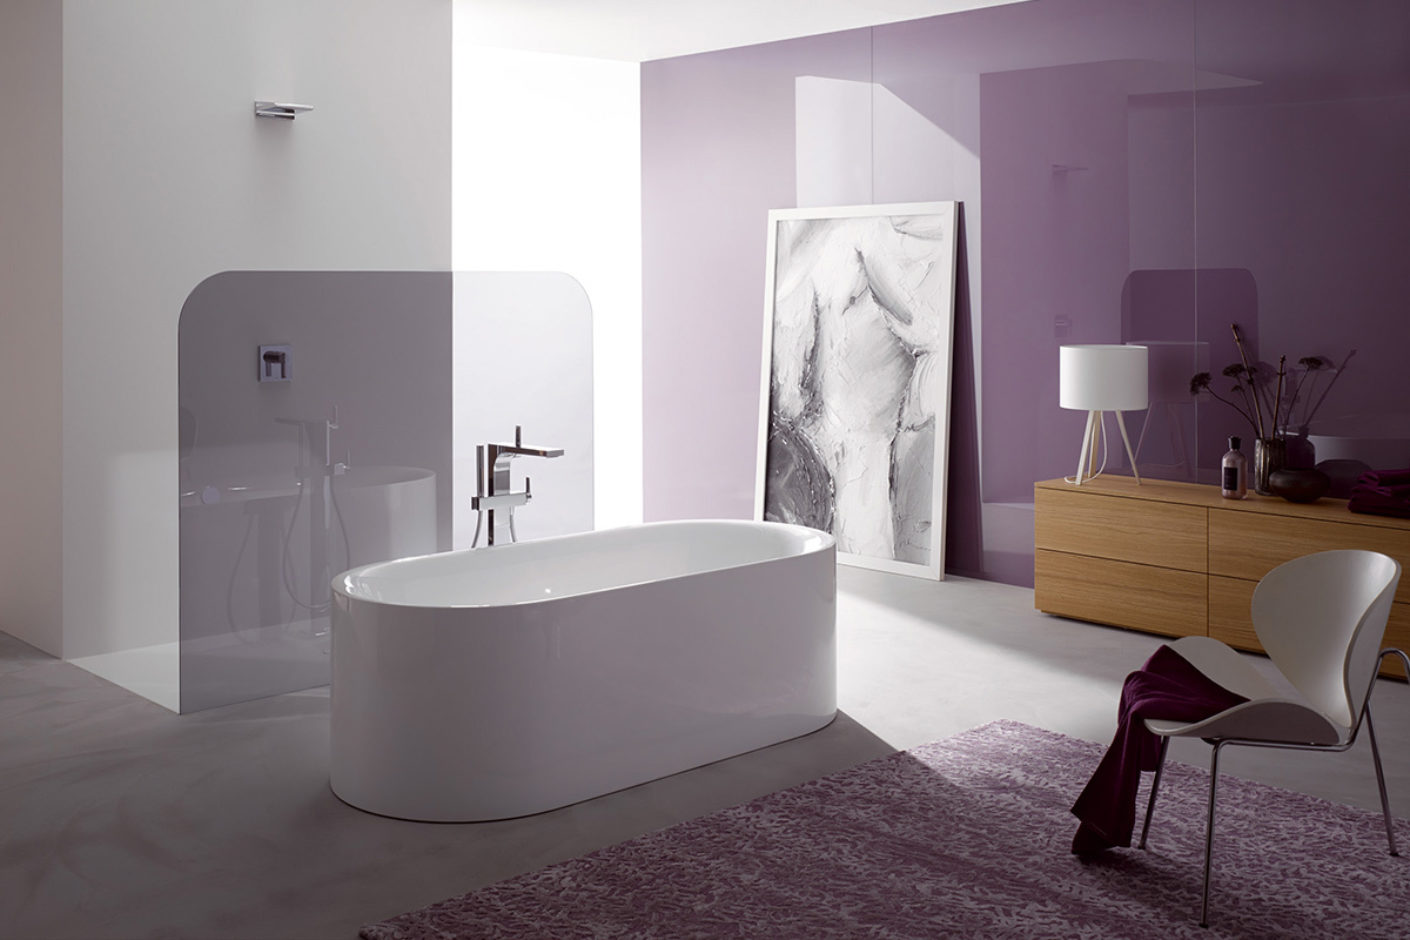 Bette Lux Oval Silhouette bathtub, lilac walls